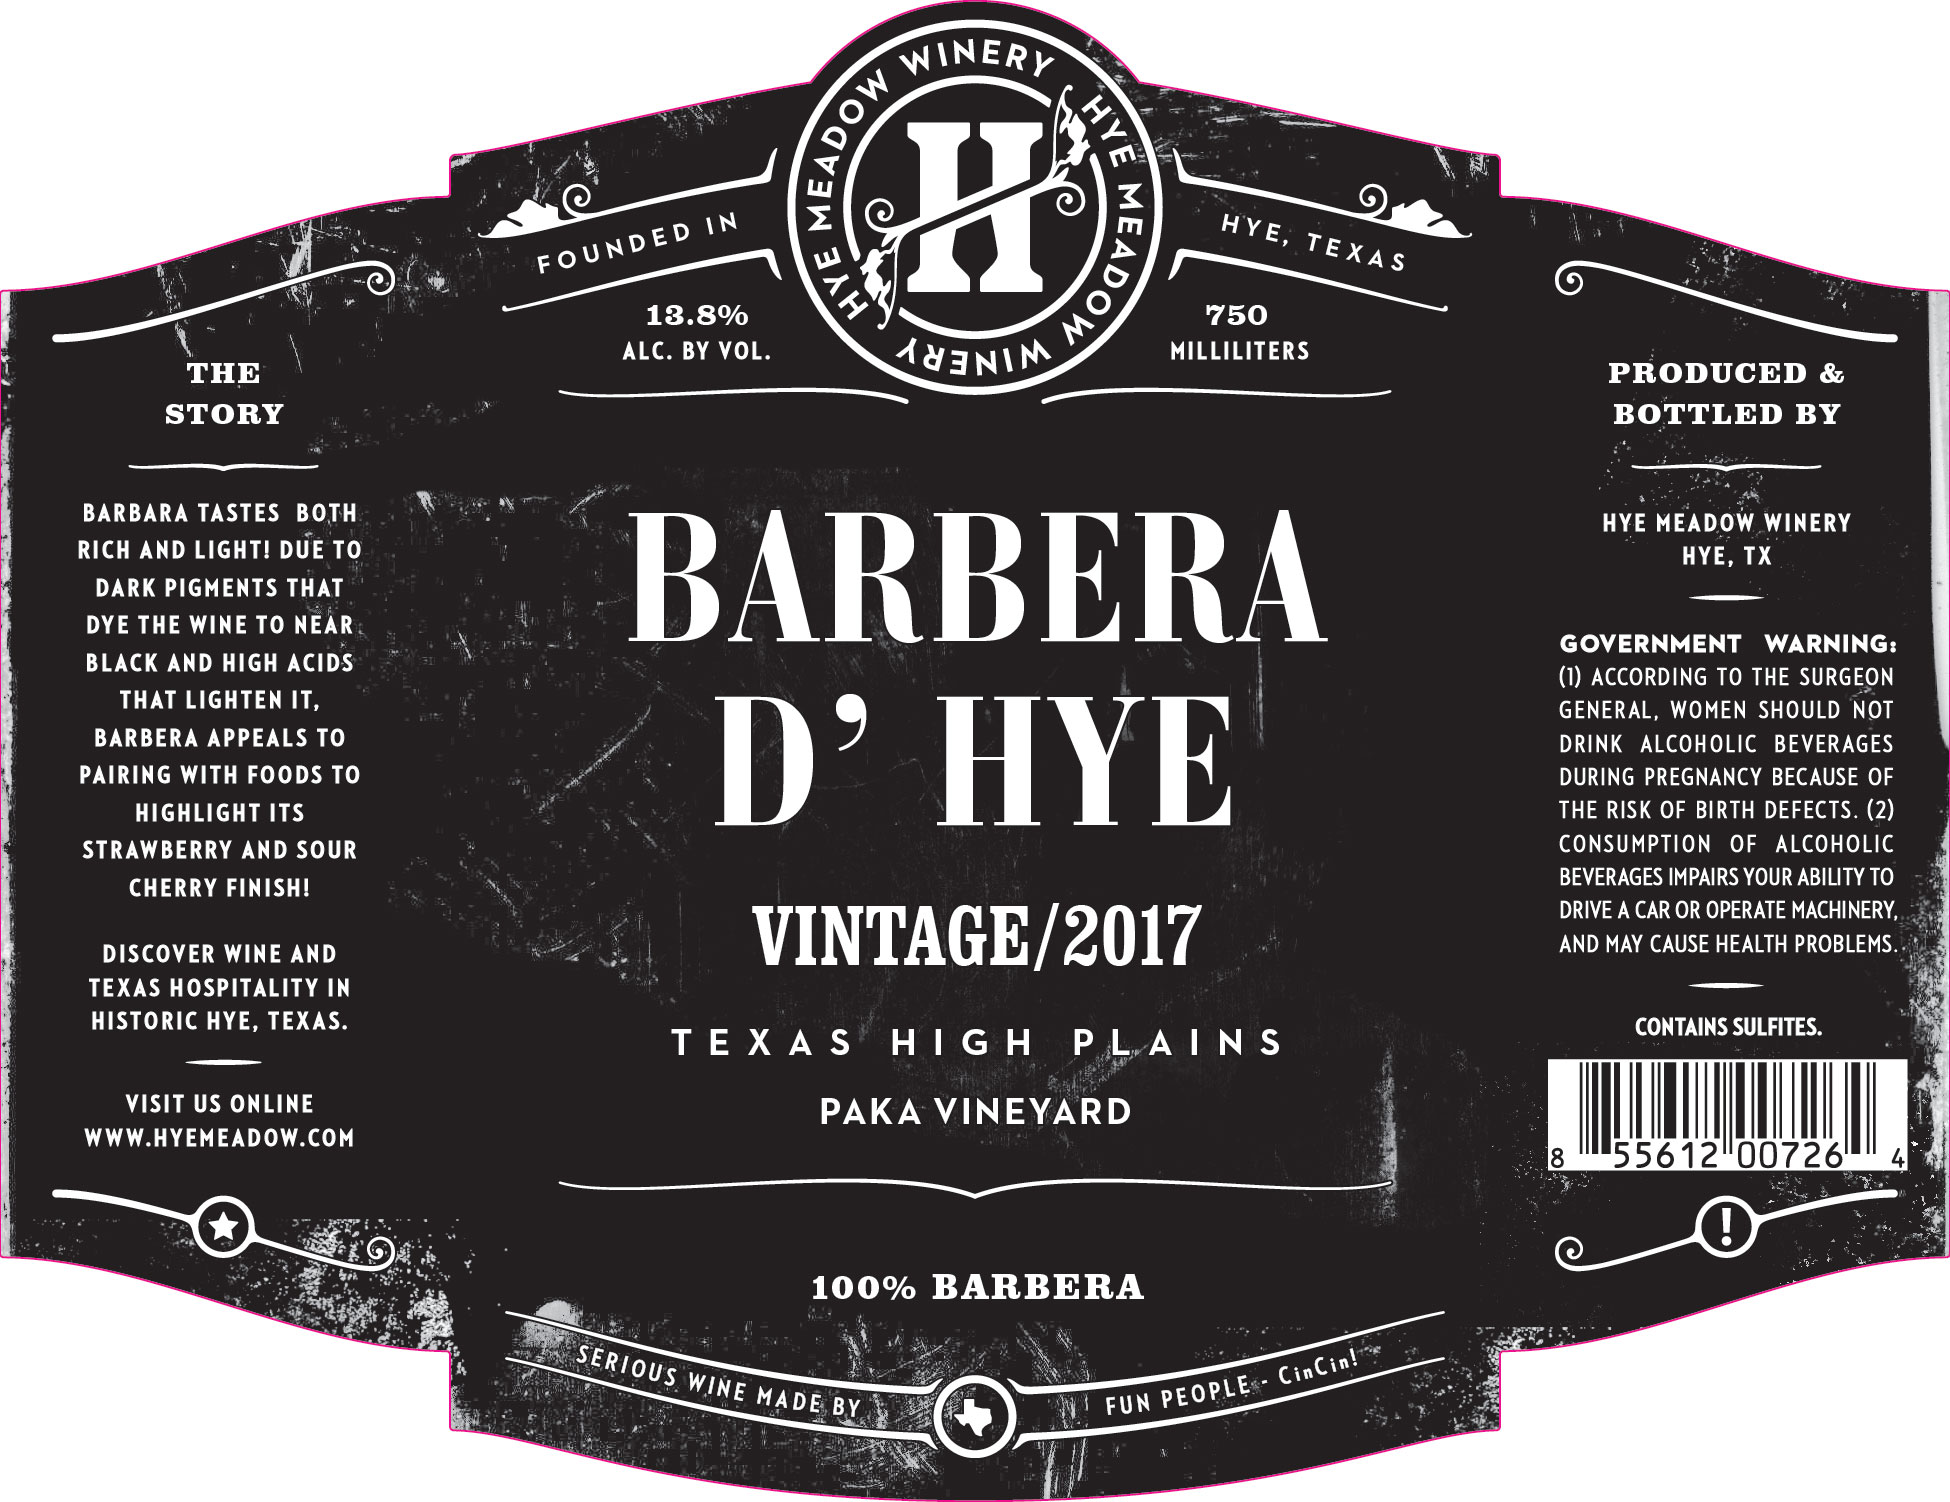 2017 Barbera d' Hye Photo